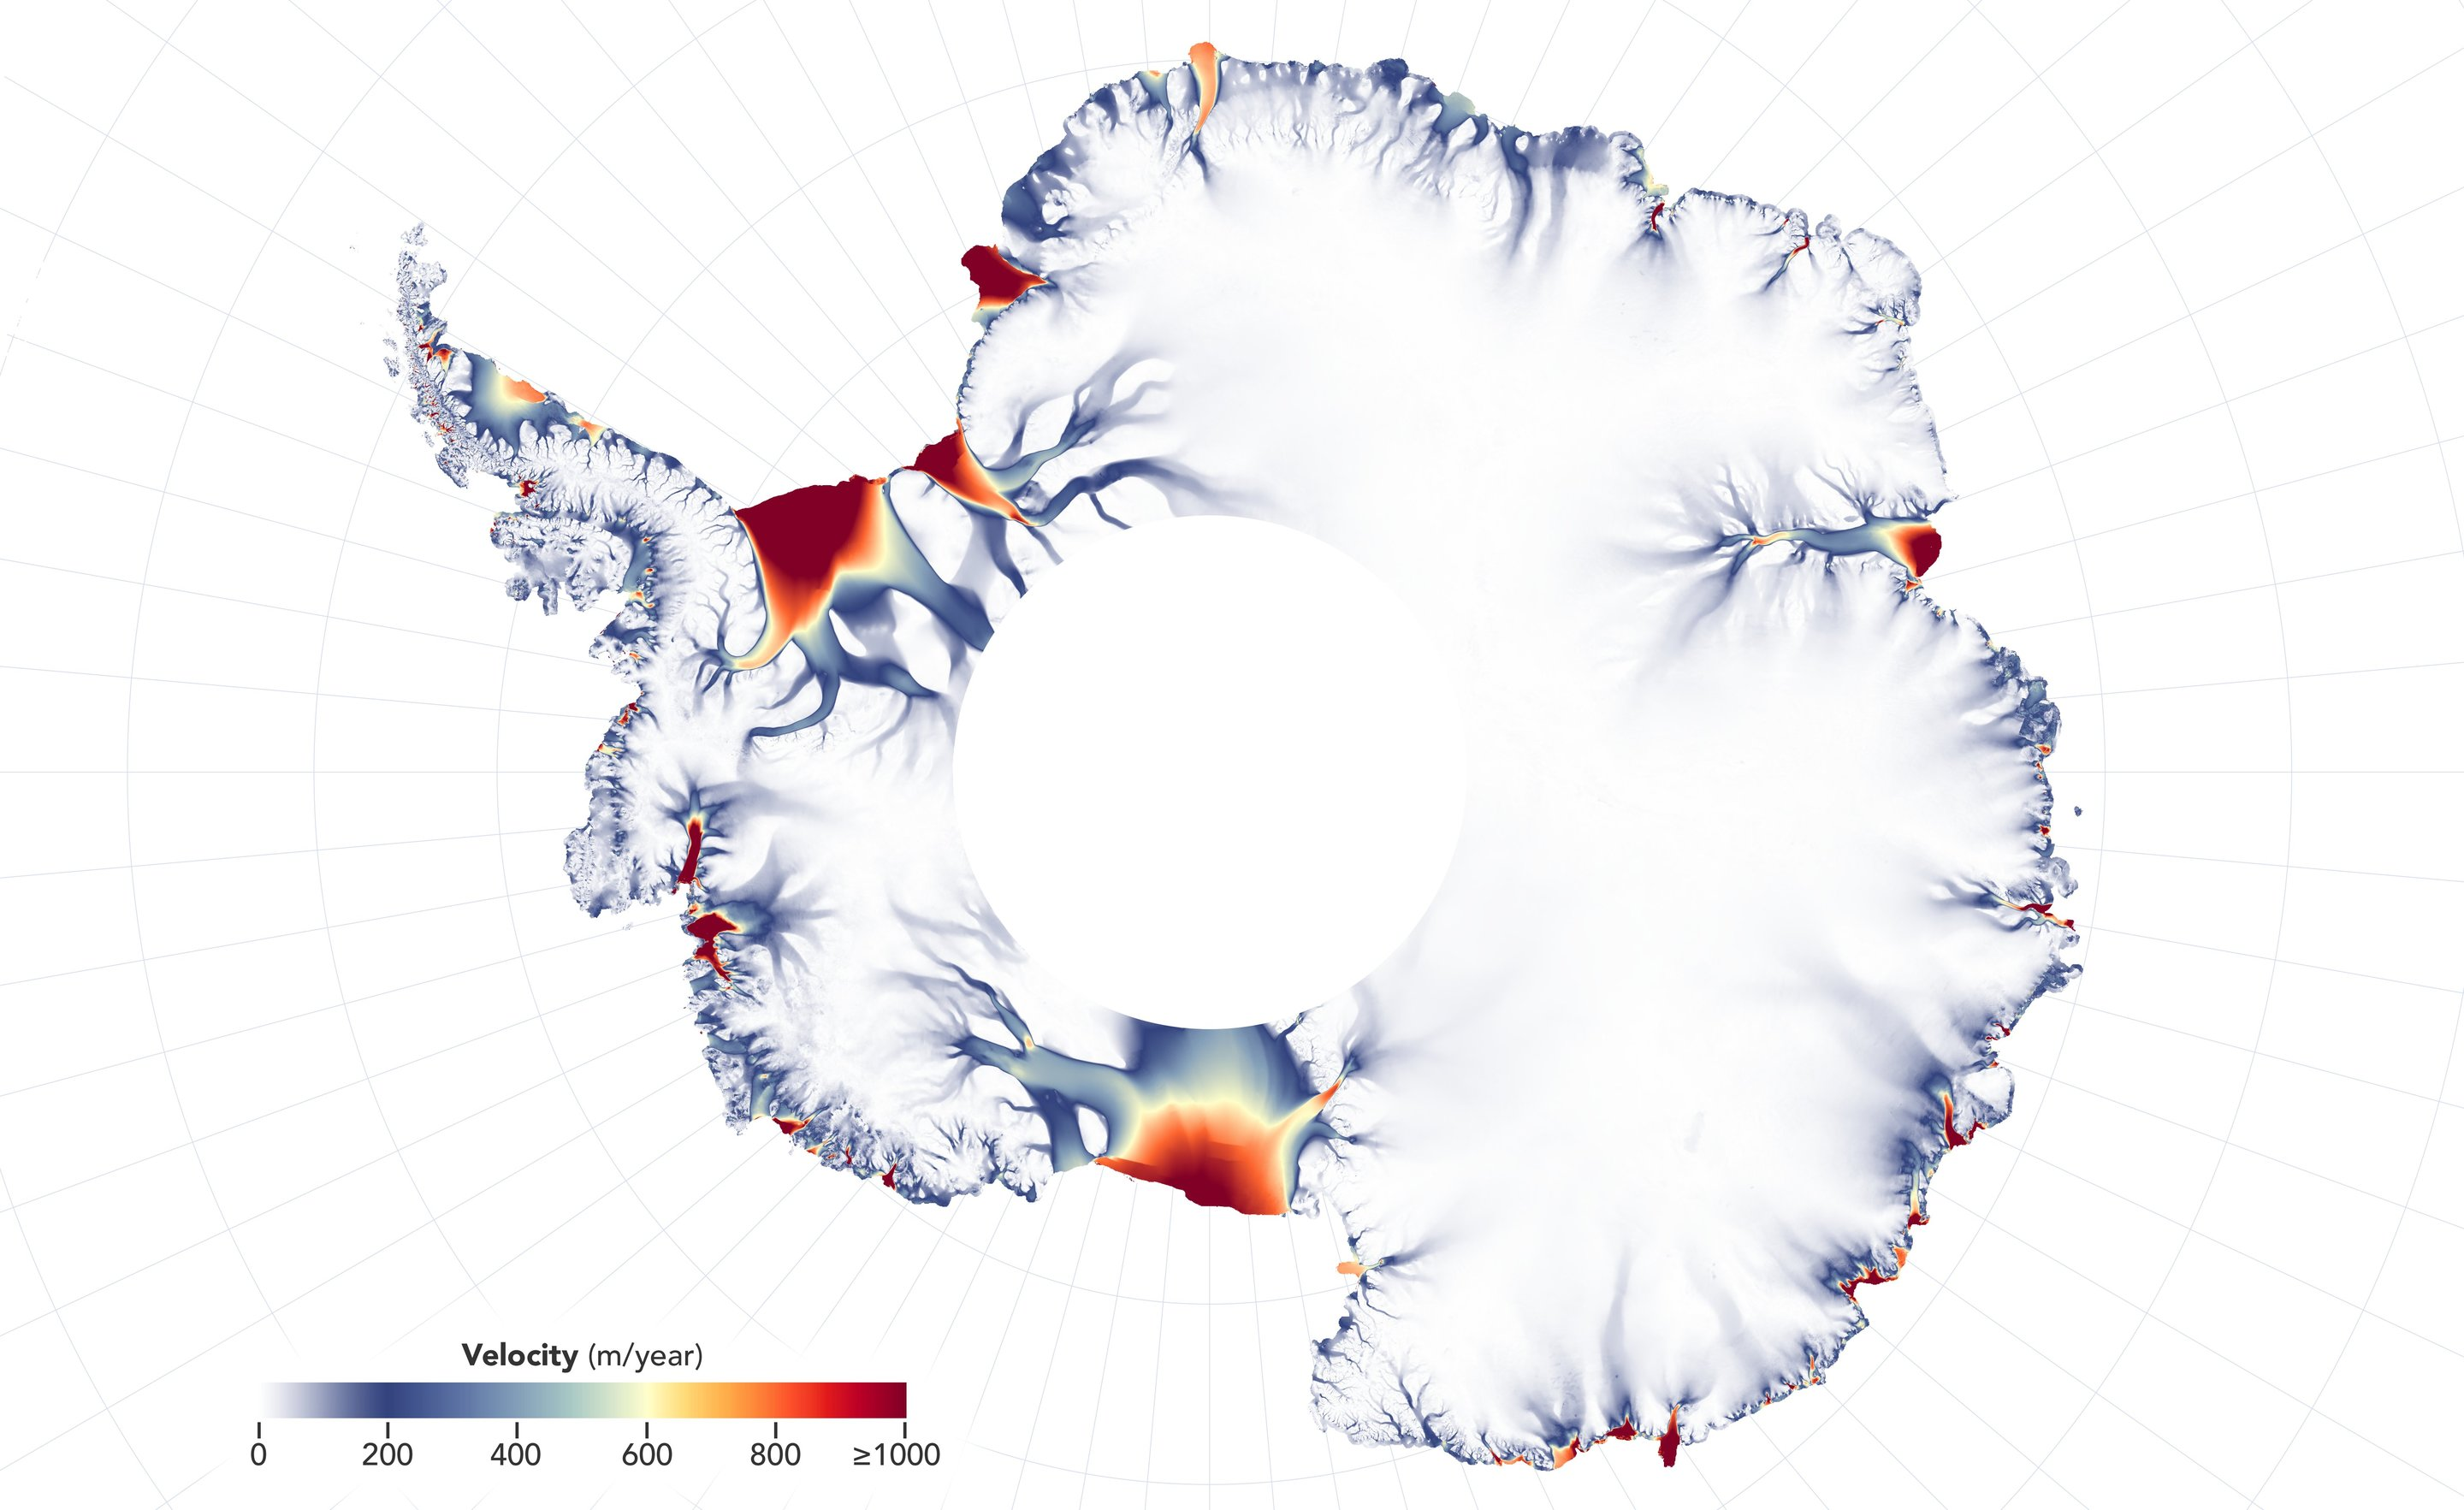 More glaciers in East Antarctica are waking up